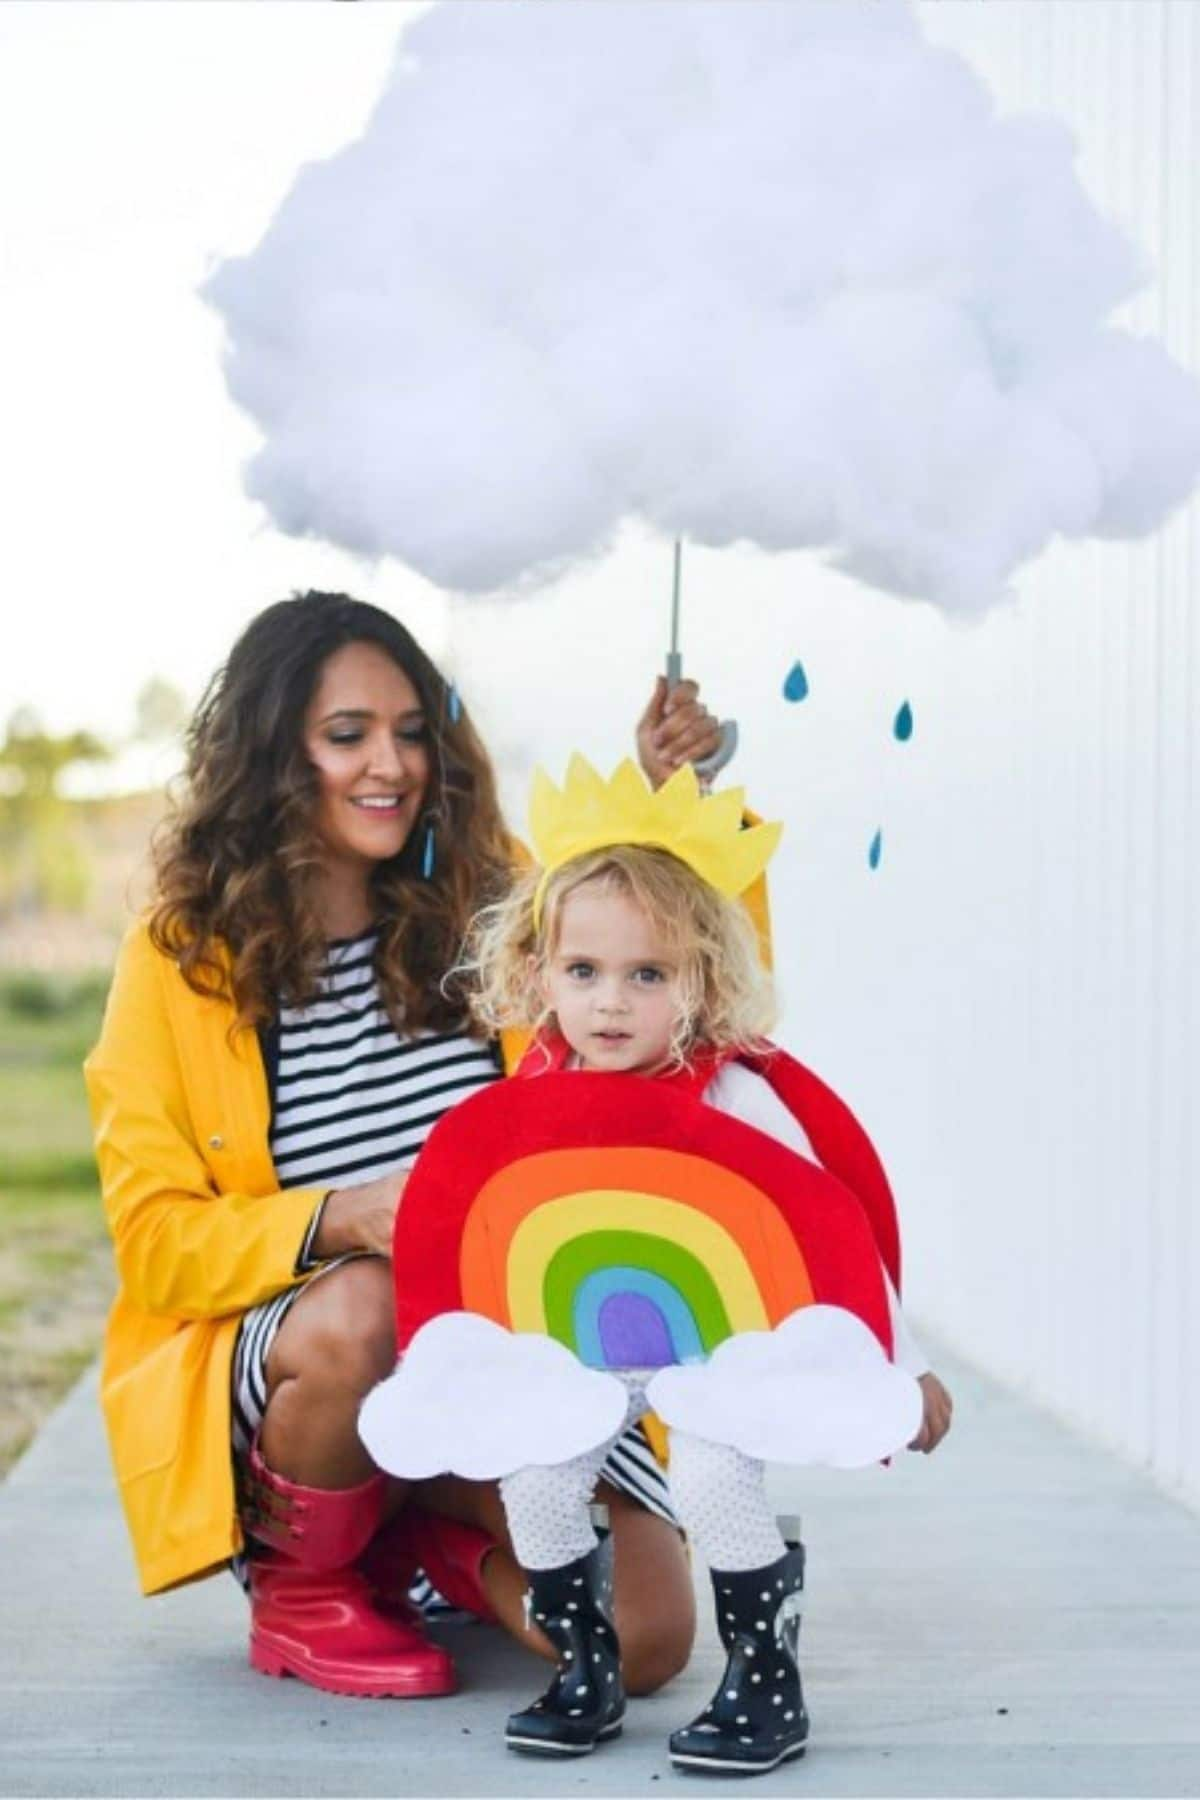 mom dressed up as a rain cloud and toddler dressed as a rainbow